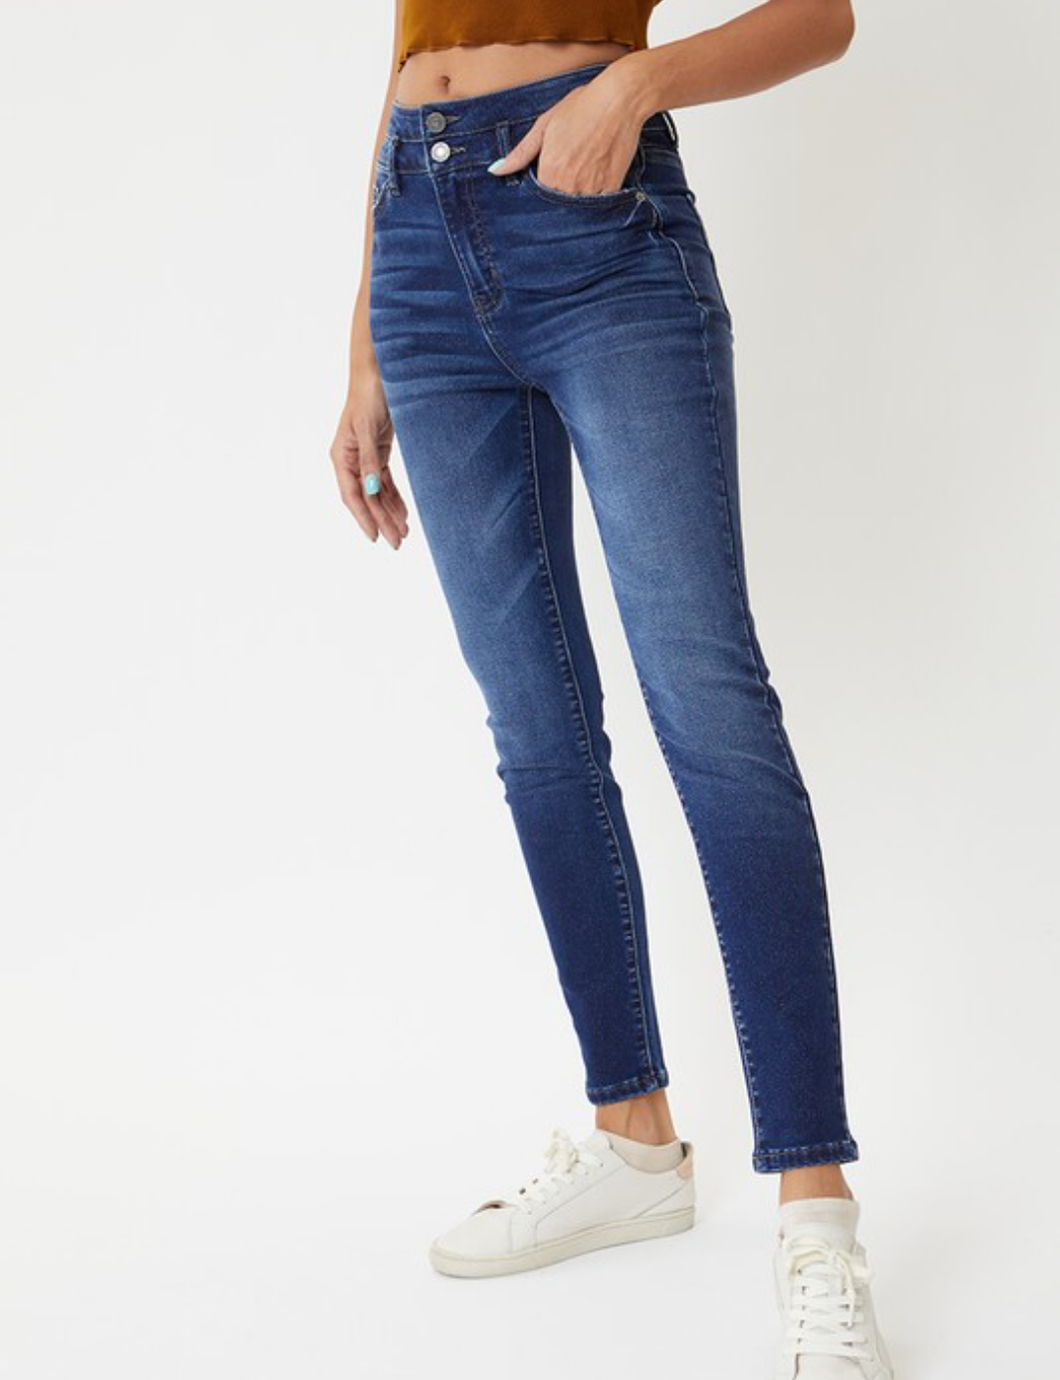 A Little Sparkle ~ High-Rise KanCan Jeans